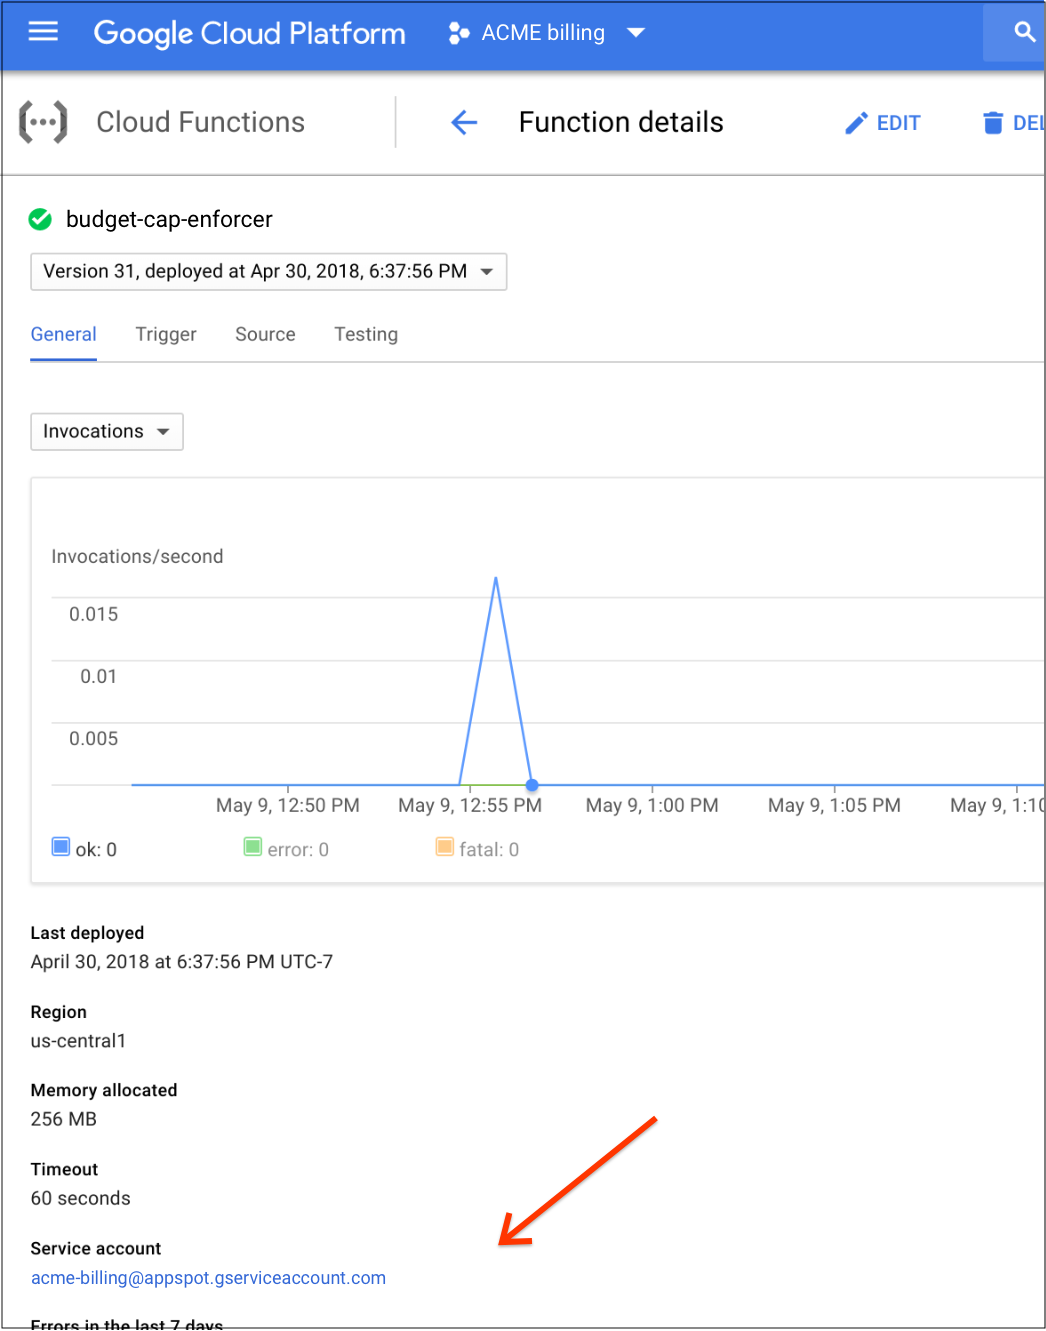 Identify the service account in the GCP console